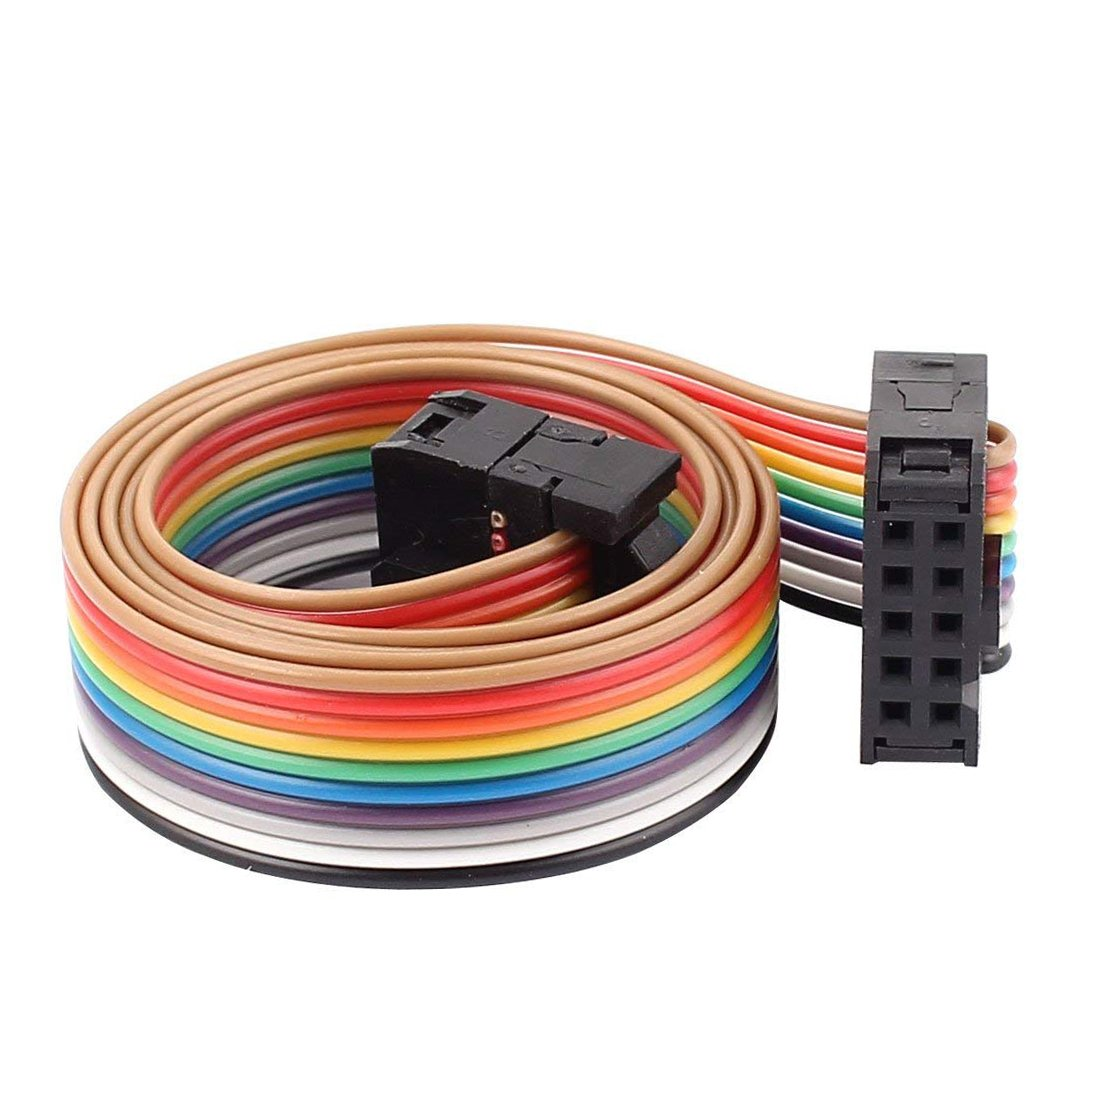 Yohii 2.54mm Pitch 10Pin 10 Way F/F Wire Rainbow Color IDC Connector Flat Rainbow Cable 48cm